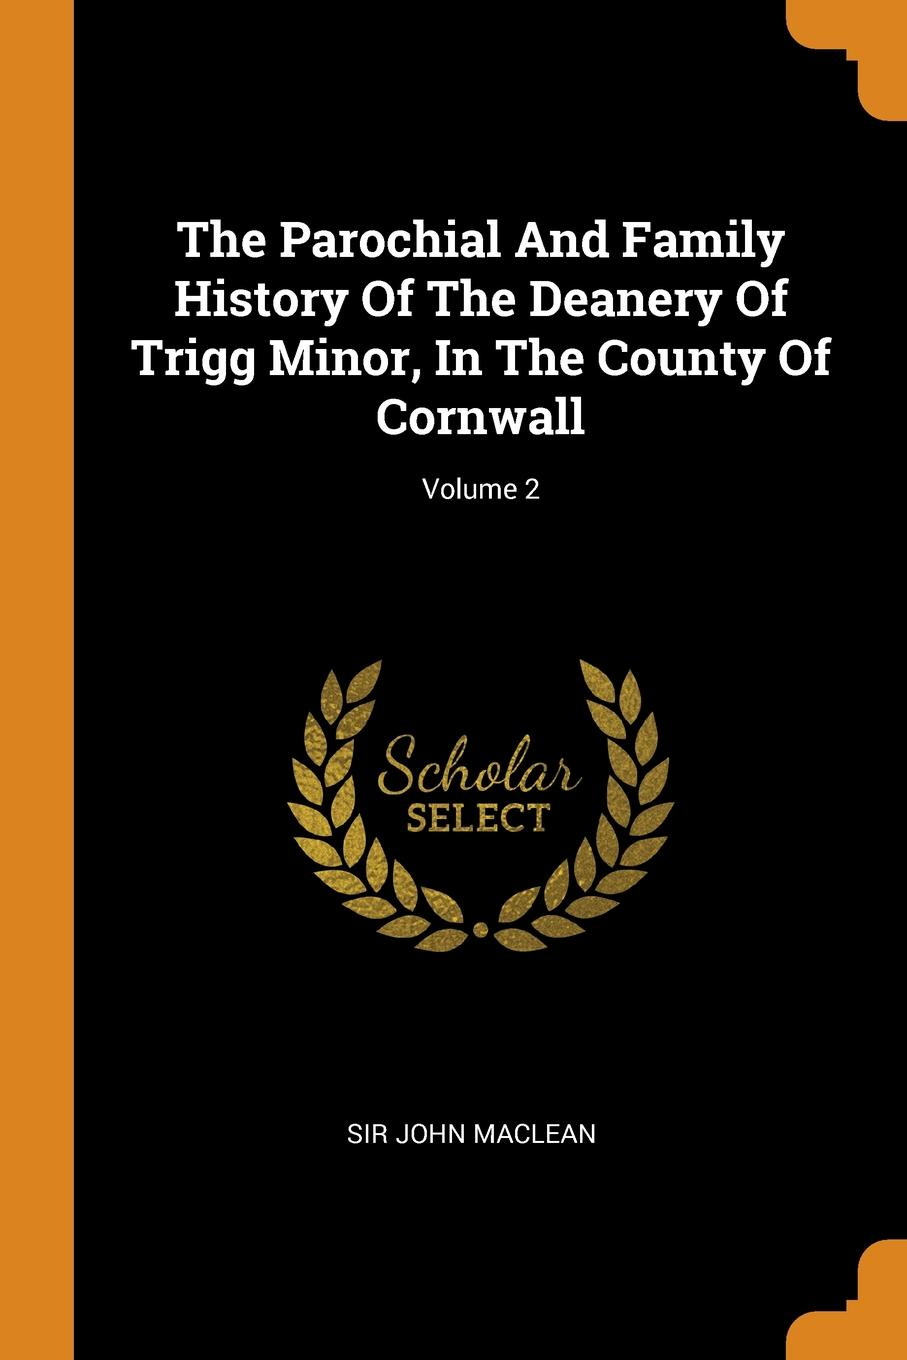 Sir John Maclean The Parochial And Family History Of The Deanery Of Trigg Minor, In The County Of Cornwall; Volume 2 john maclean the parochial and family history of the deanery of trigg minor cornwall